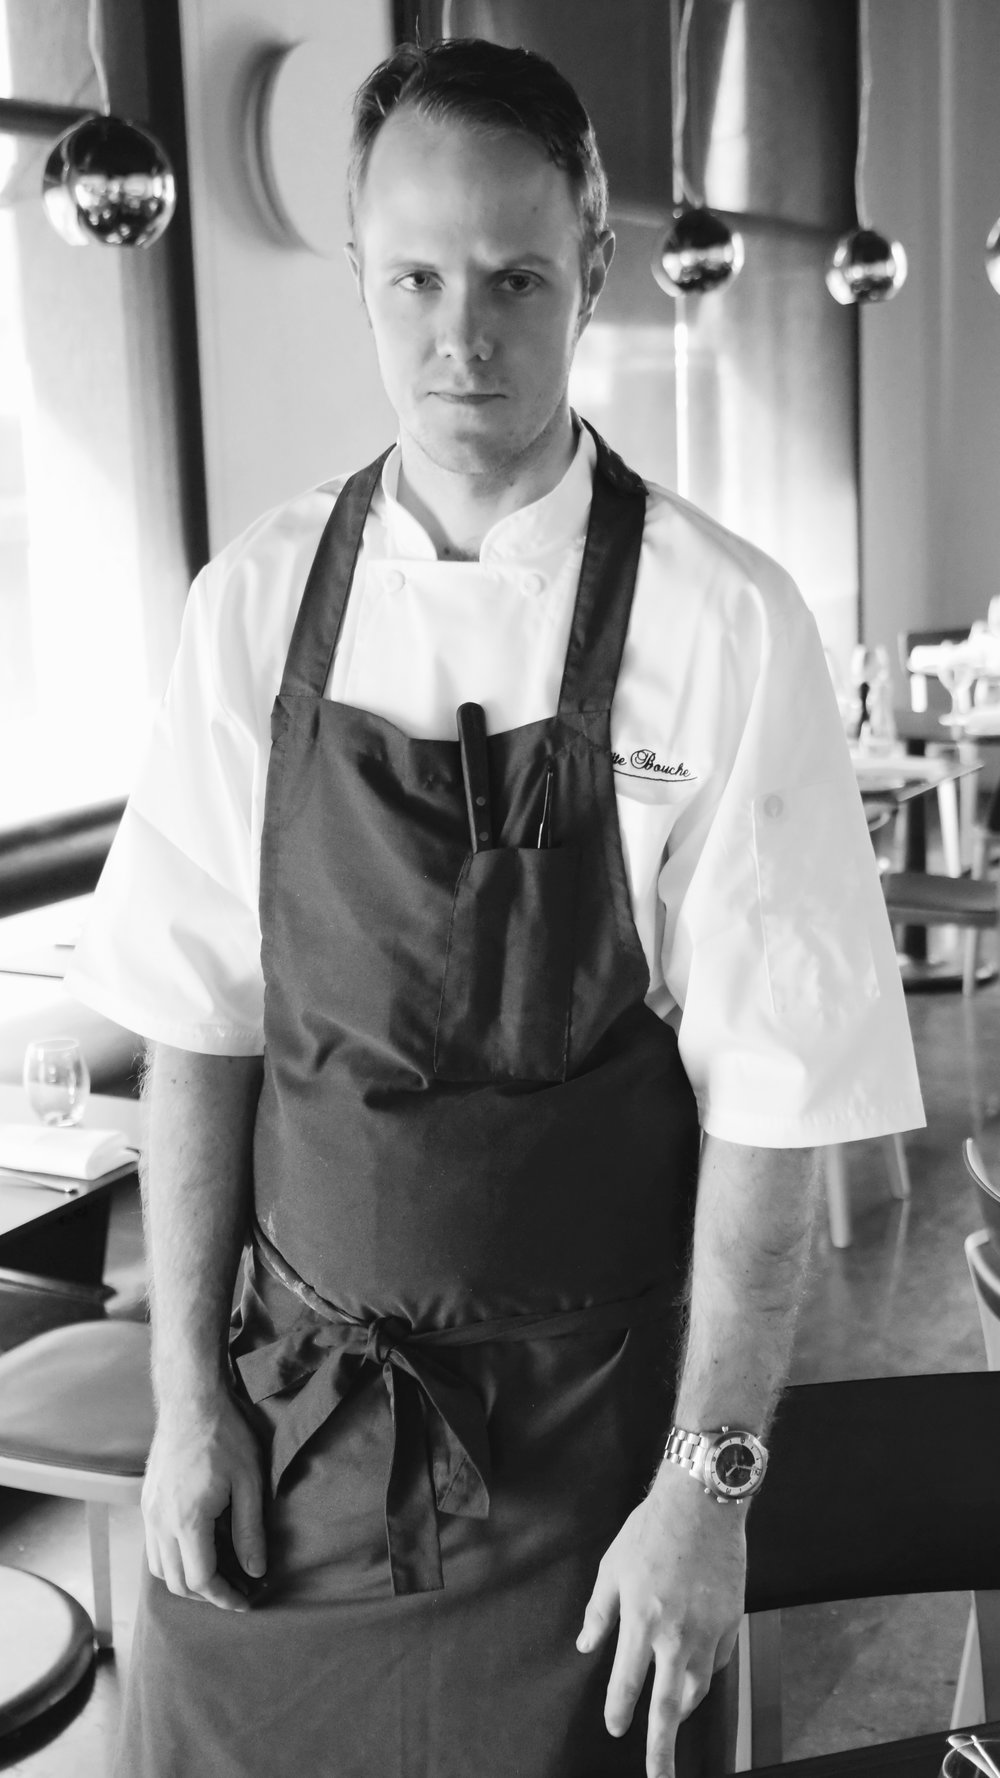 HEAD CHEF SIMON PALMER OF ECCO BISTRO.